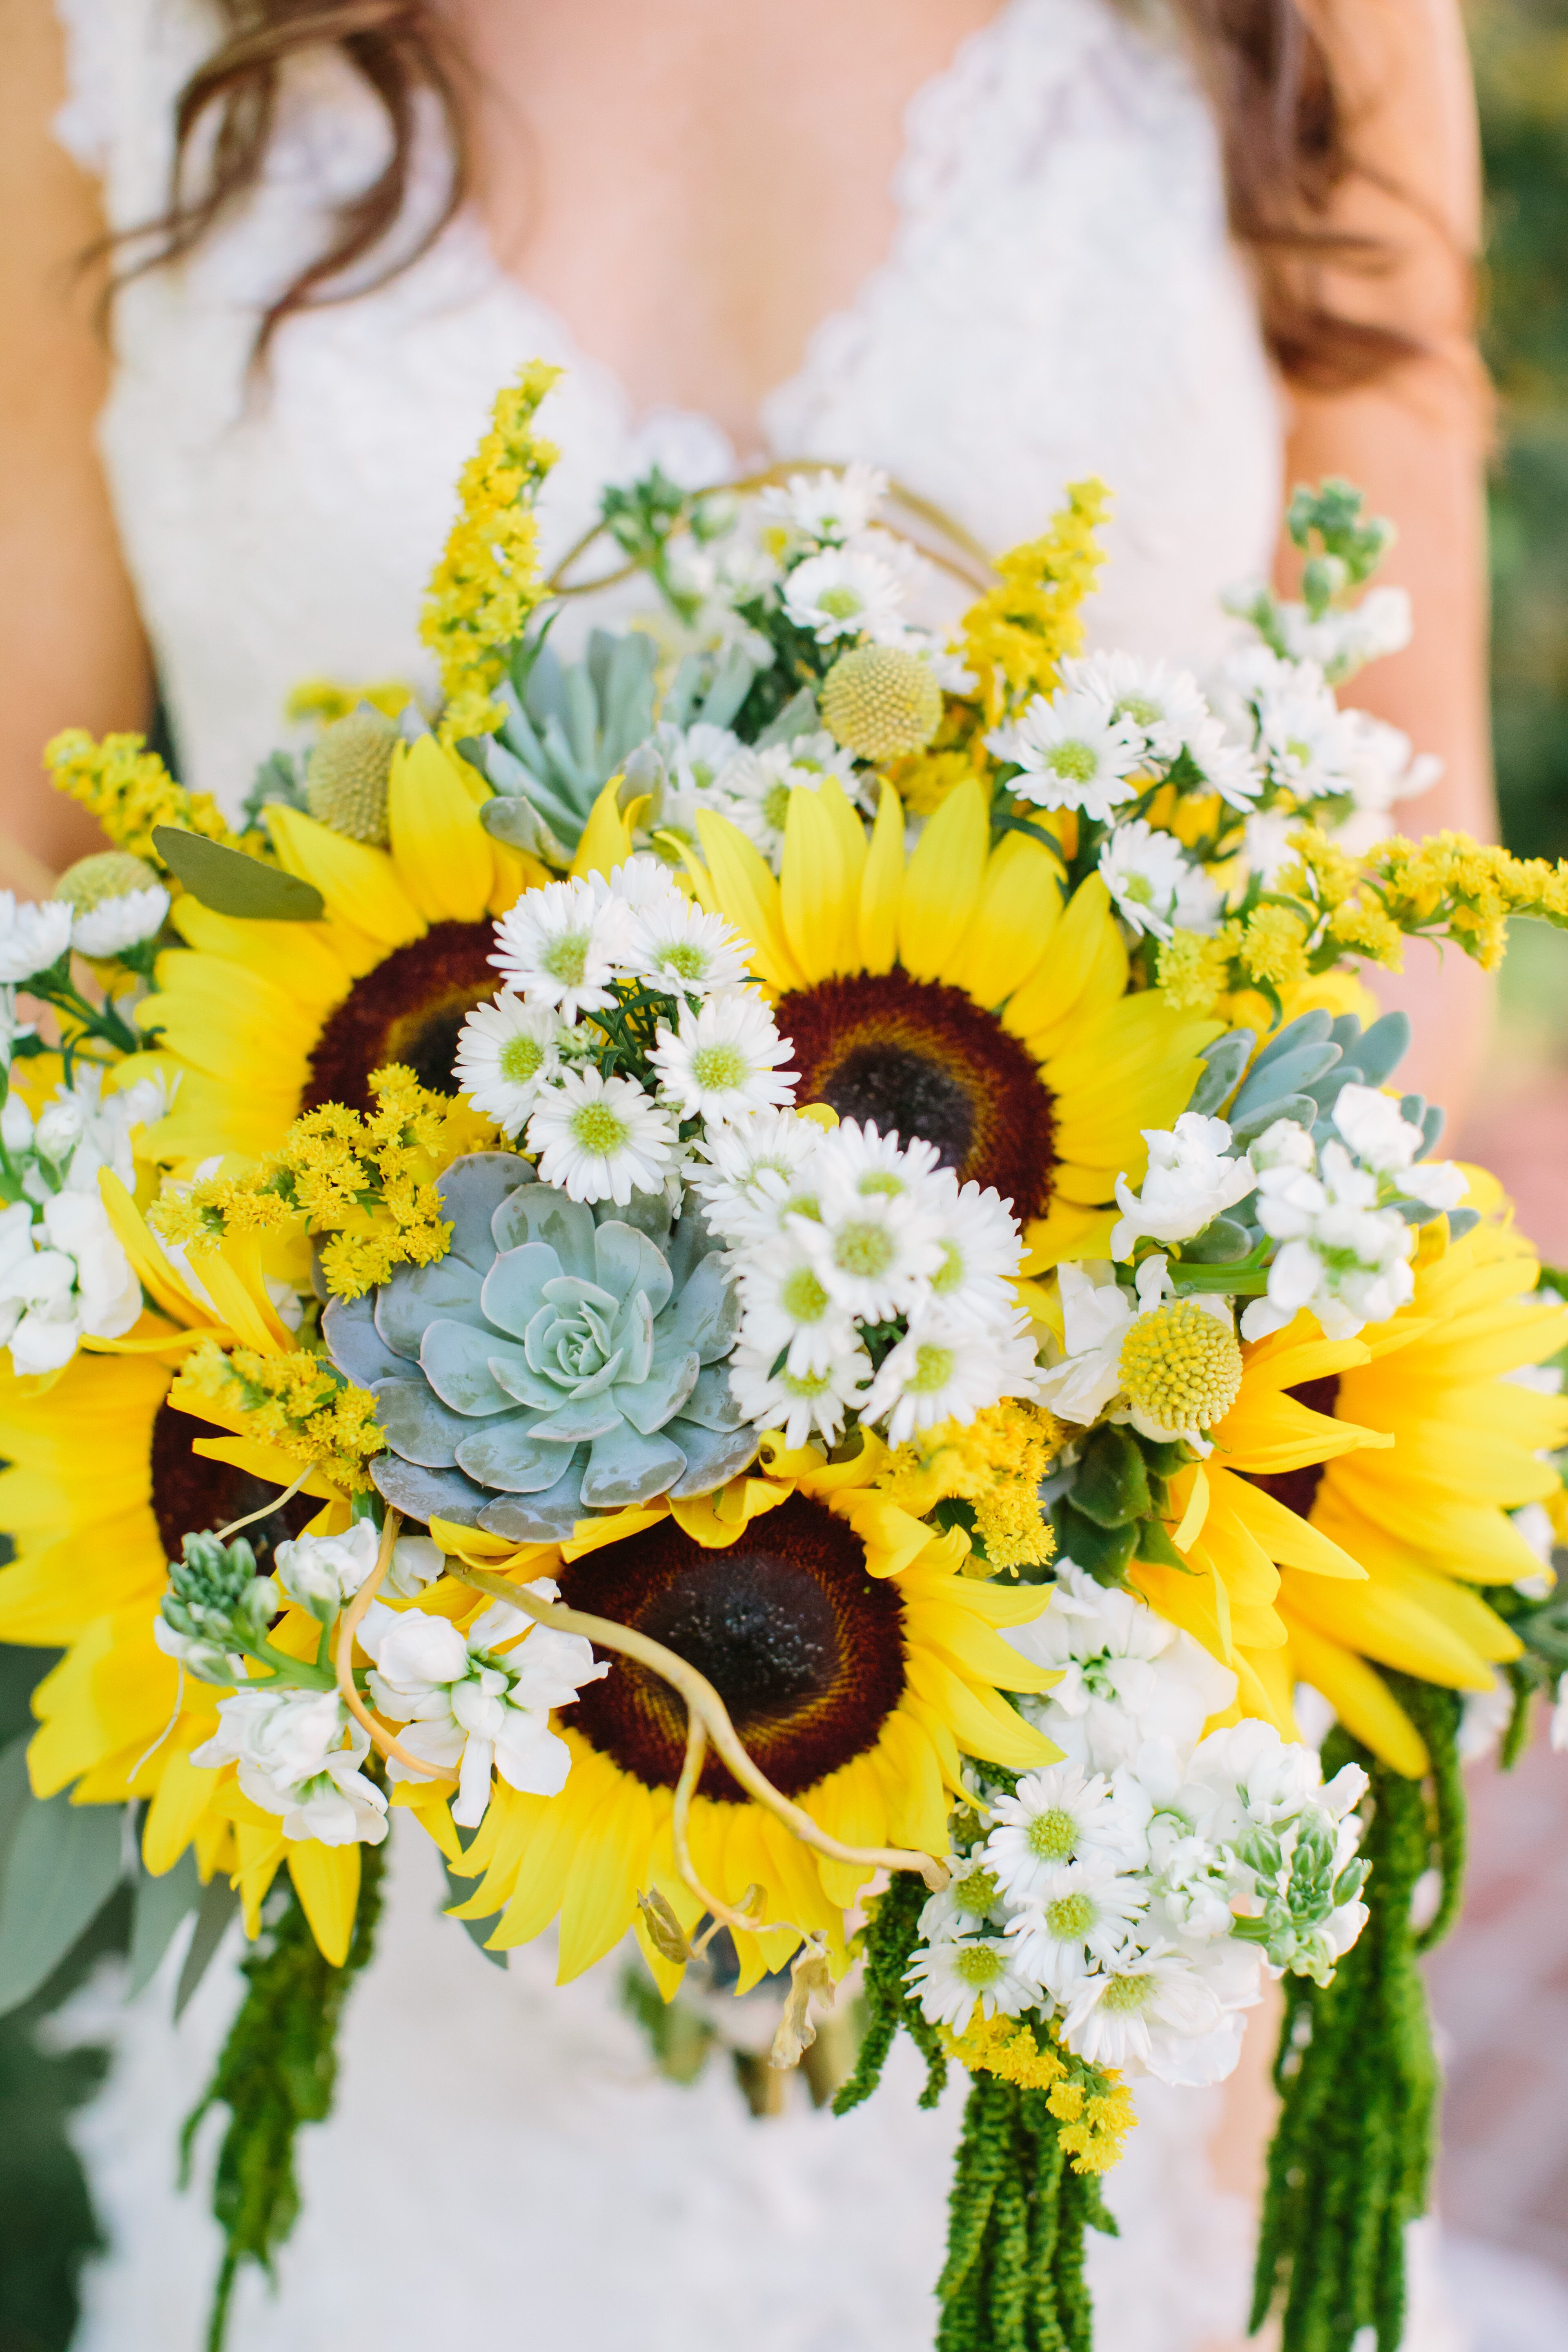 Bright Sunflowers Succulent And Daisy Bouquet